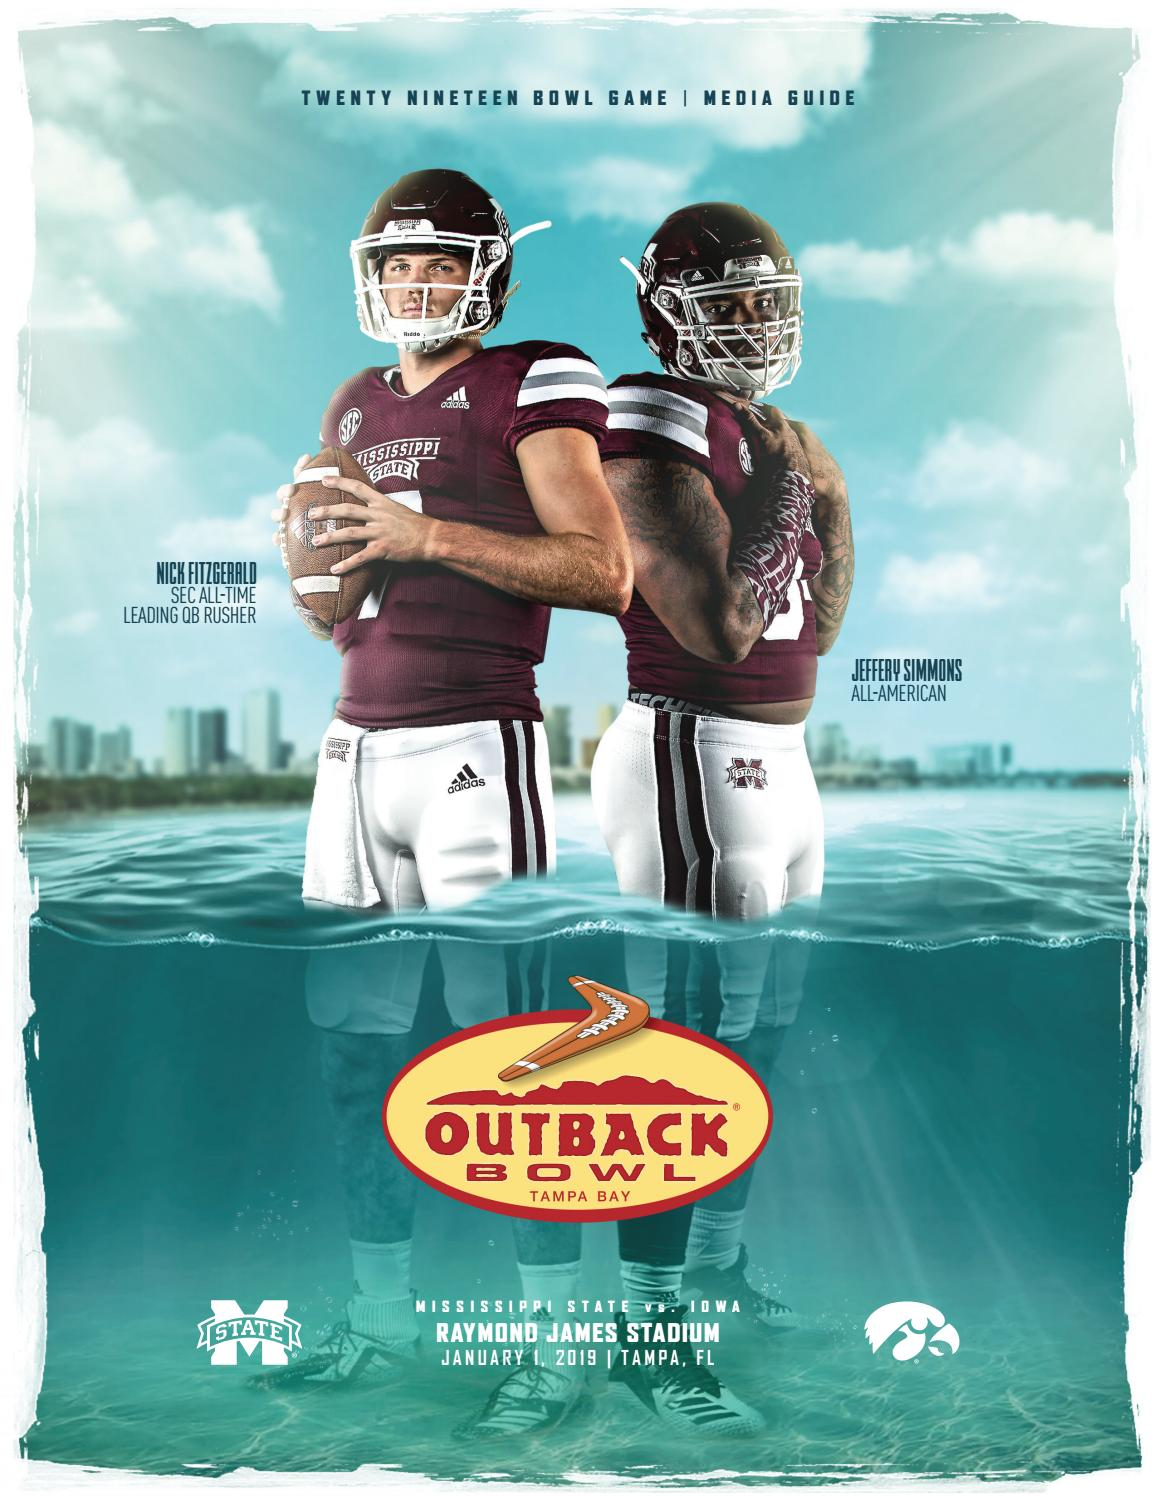 563ce91ac3a 2019 Mississippi State Football Outback Bowl Media Guide by Mississippi  State University Athletics - issuu